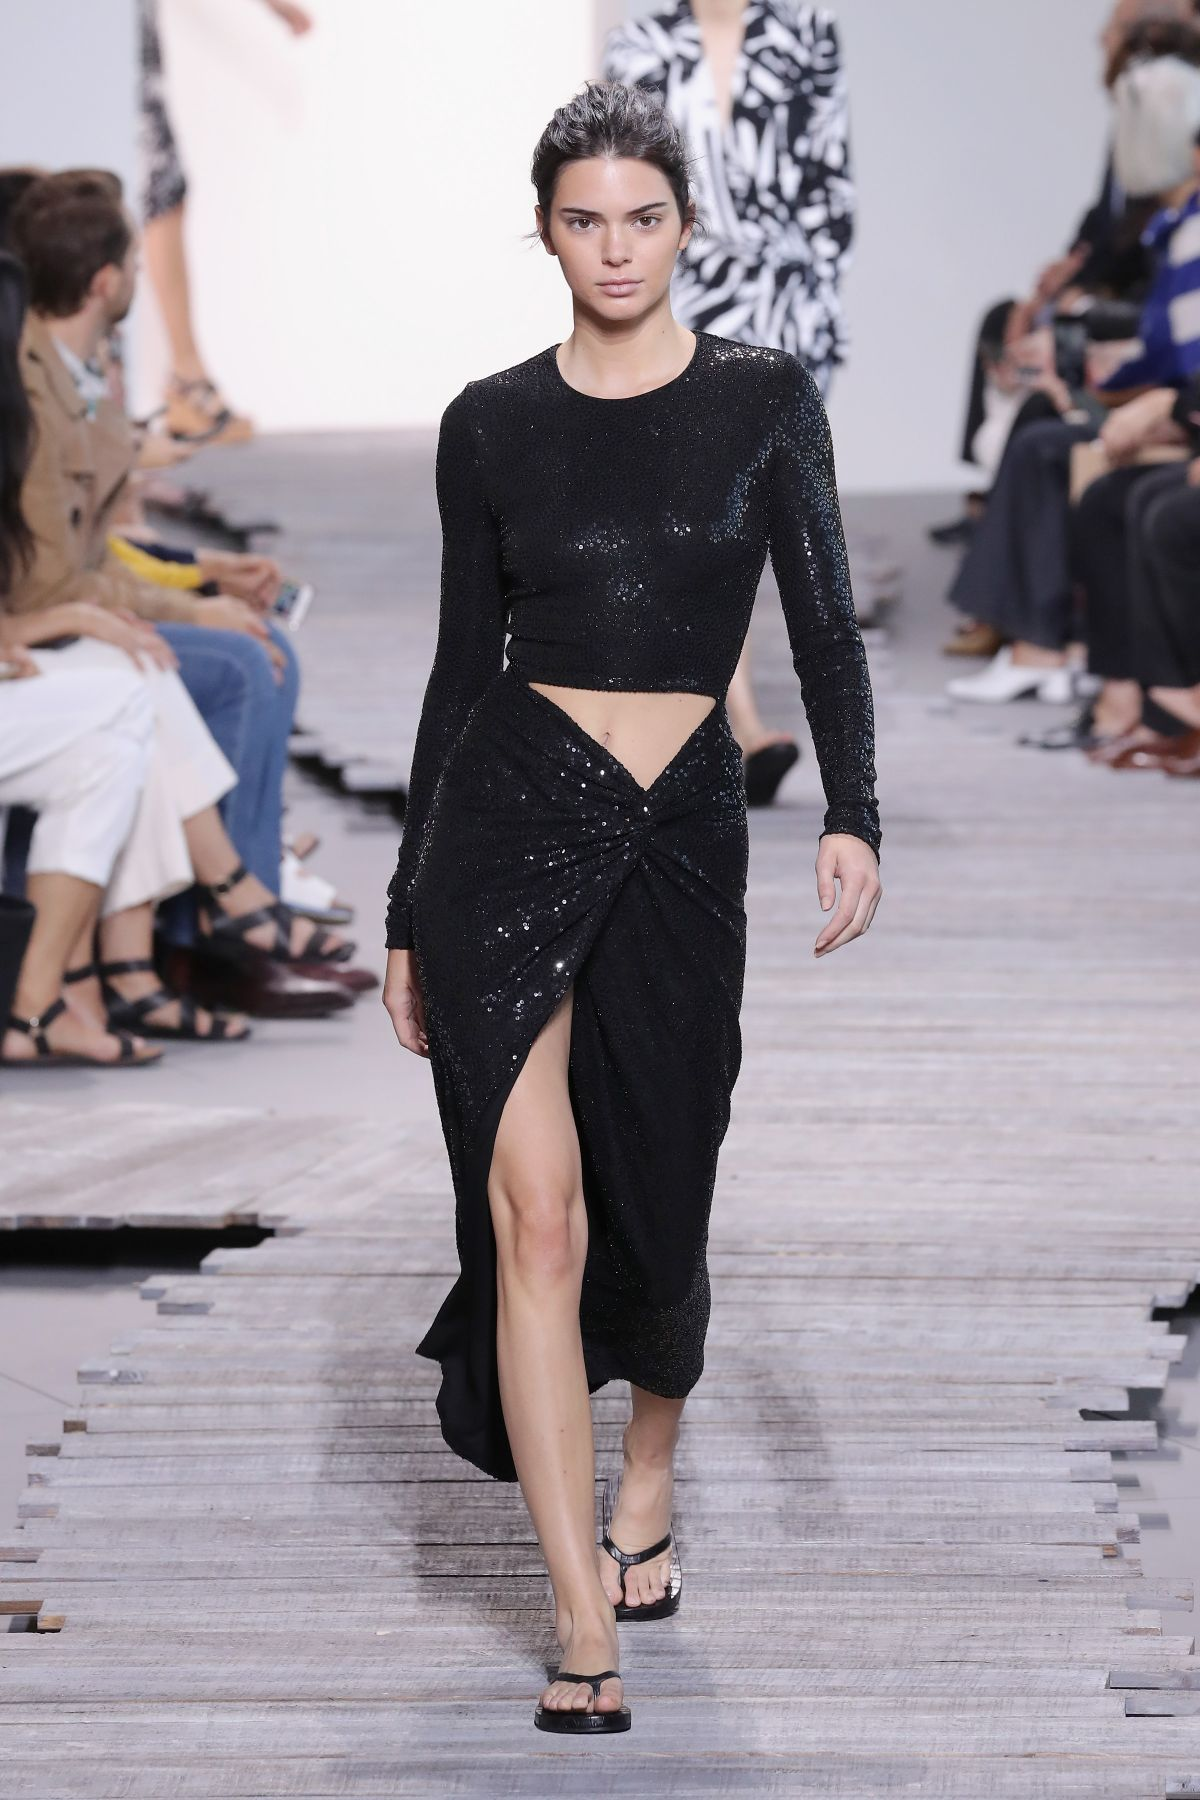 Kendall Jenner Walks The Runway For Michael Kors Fashion Show During Nyfw In Nyc Celebzz Celebzz